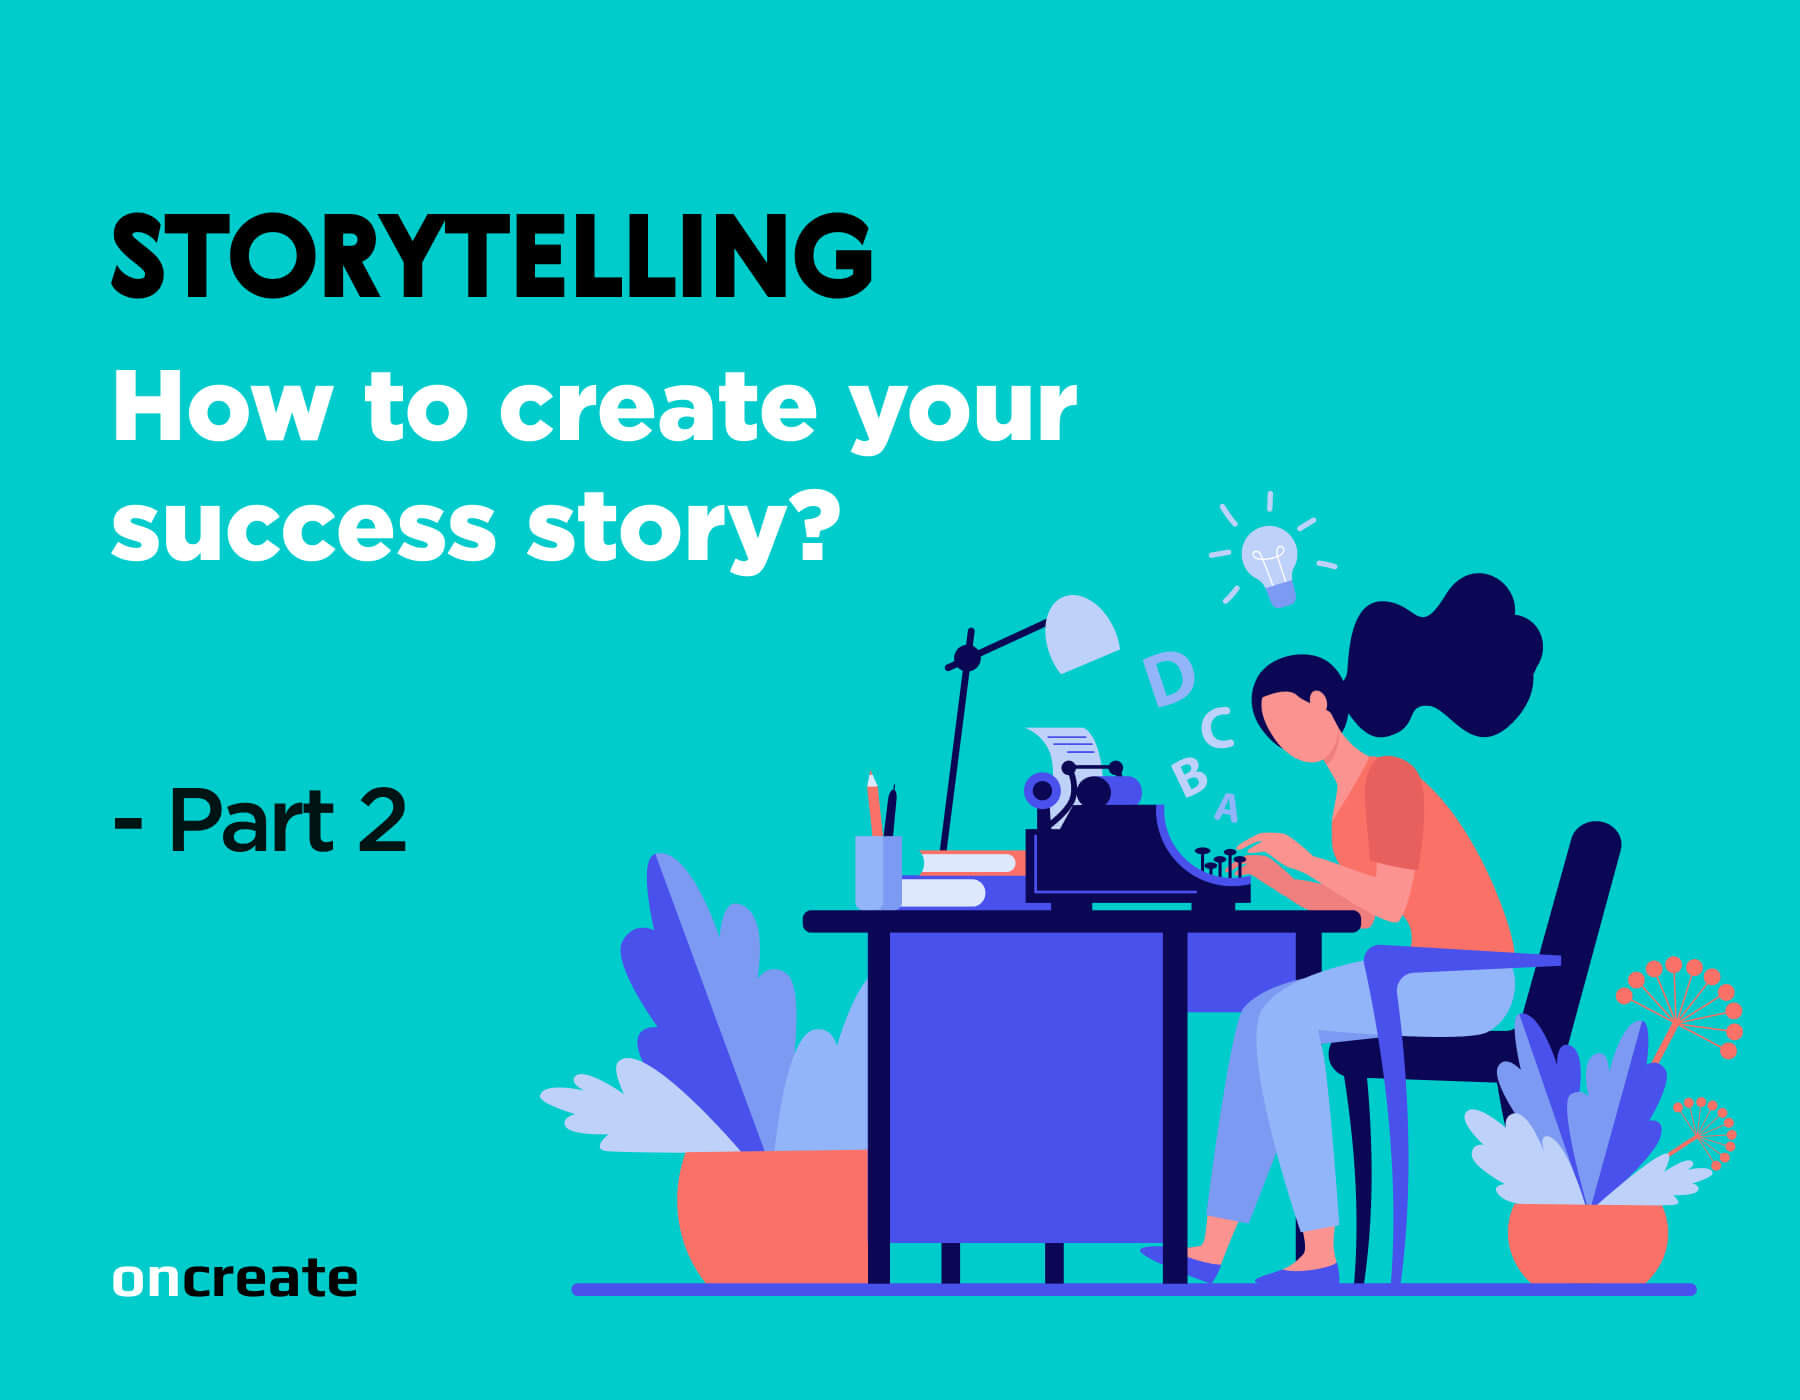 Storytelling: How to Create your Success Story?